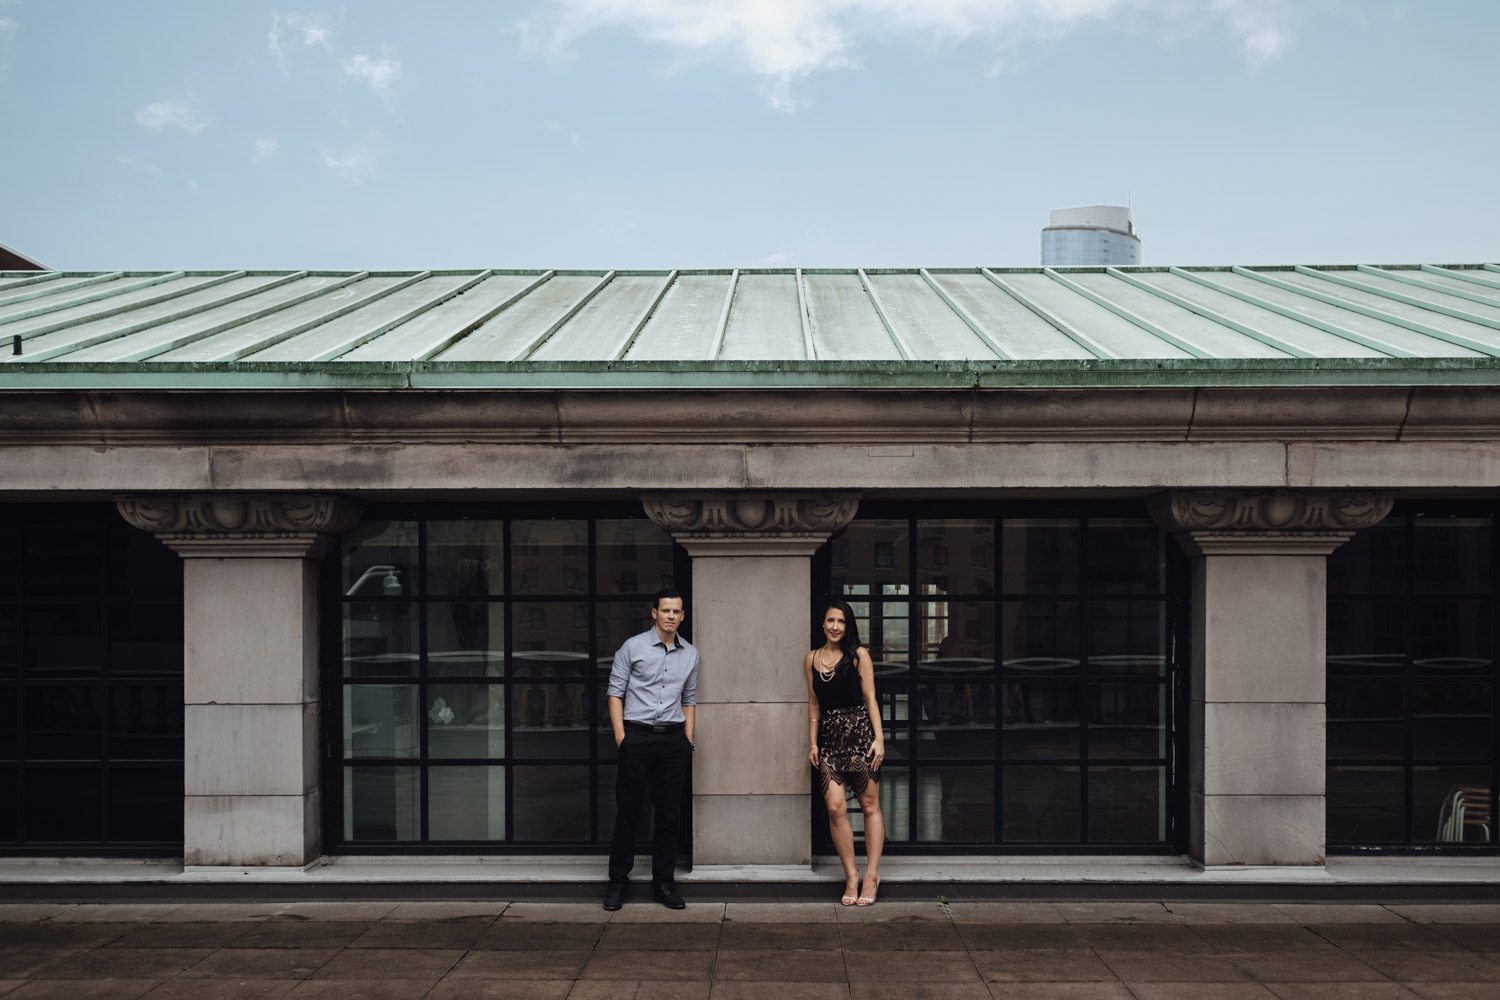 vancouver art gallery engagement photography rooftop autumn fall season